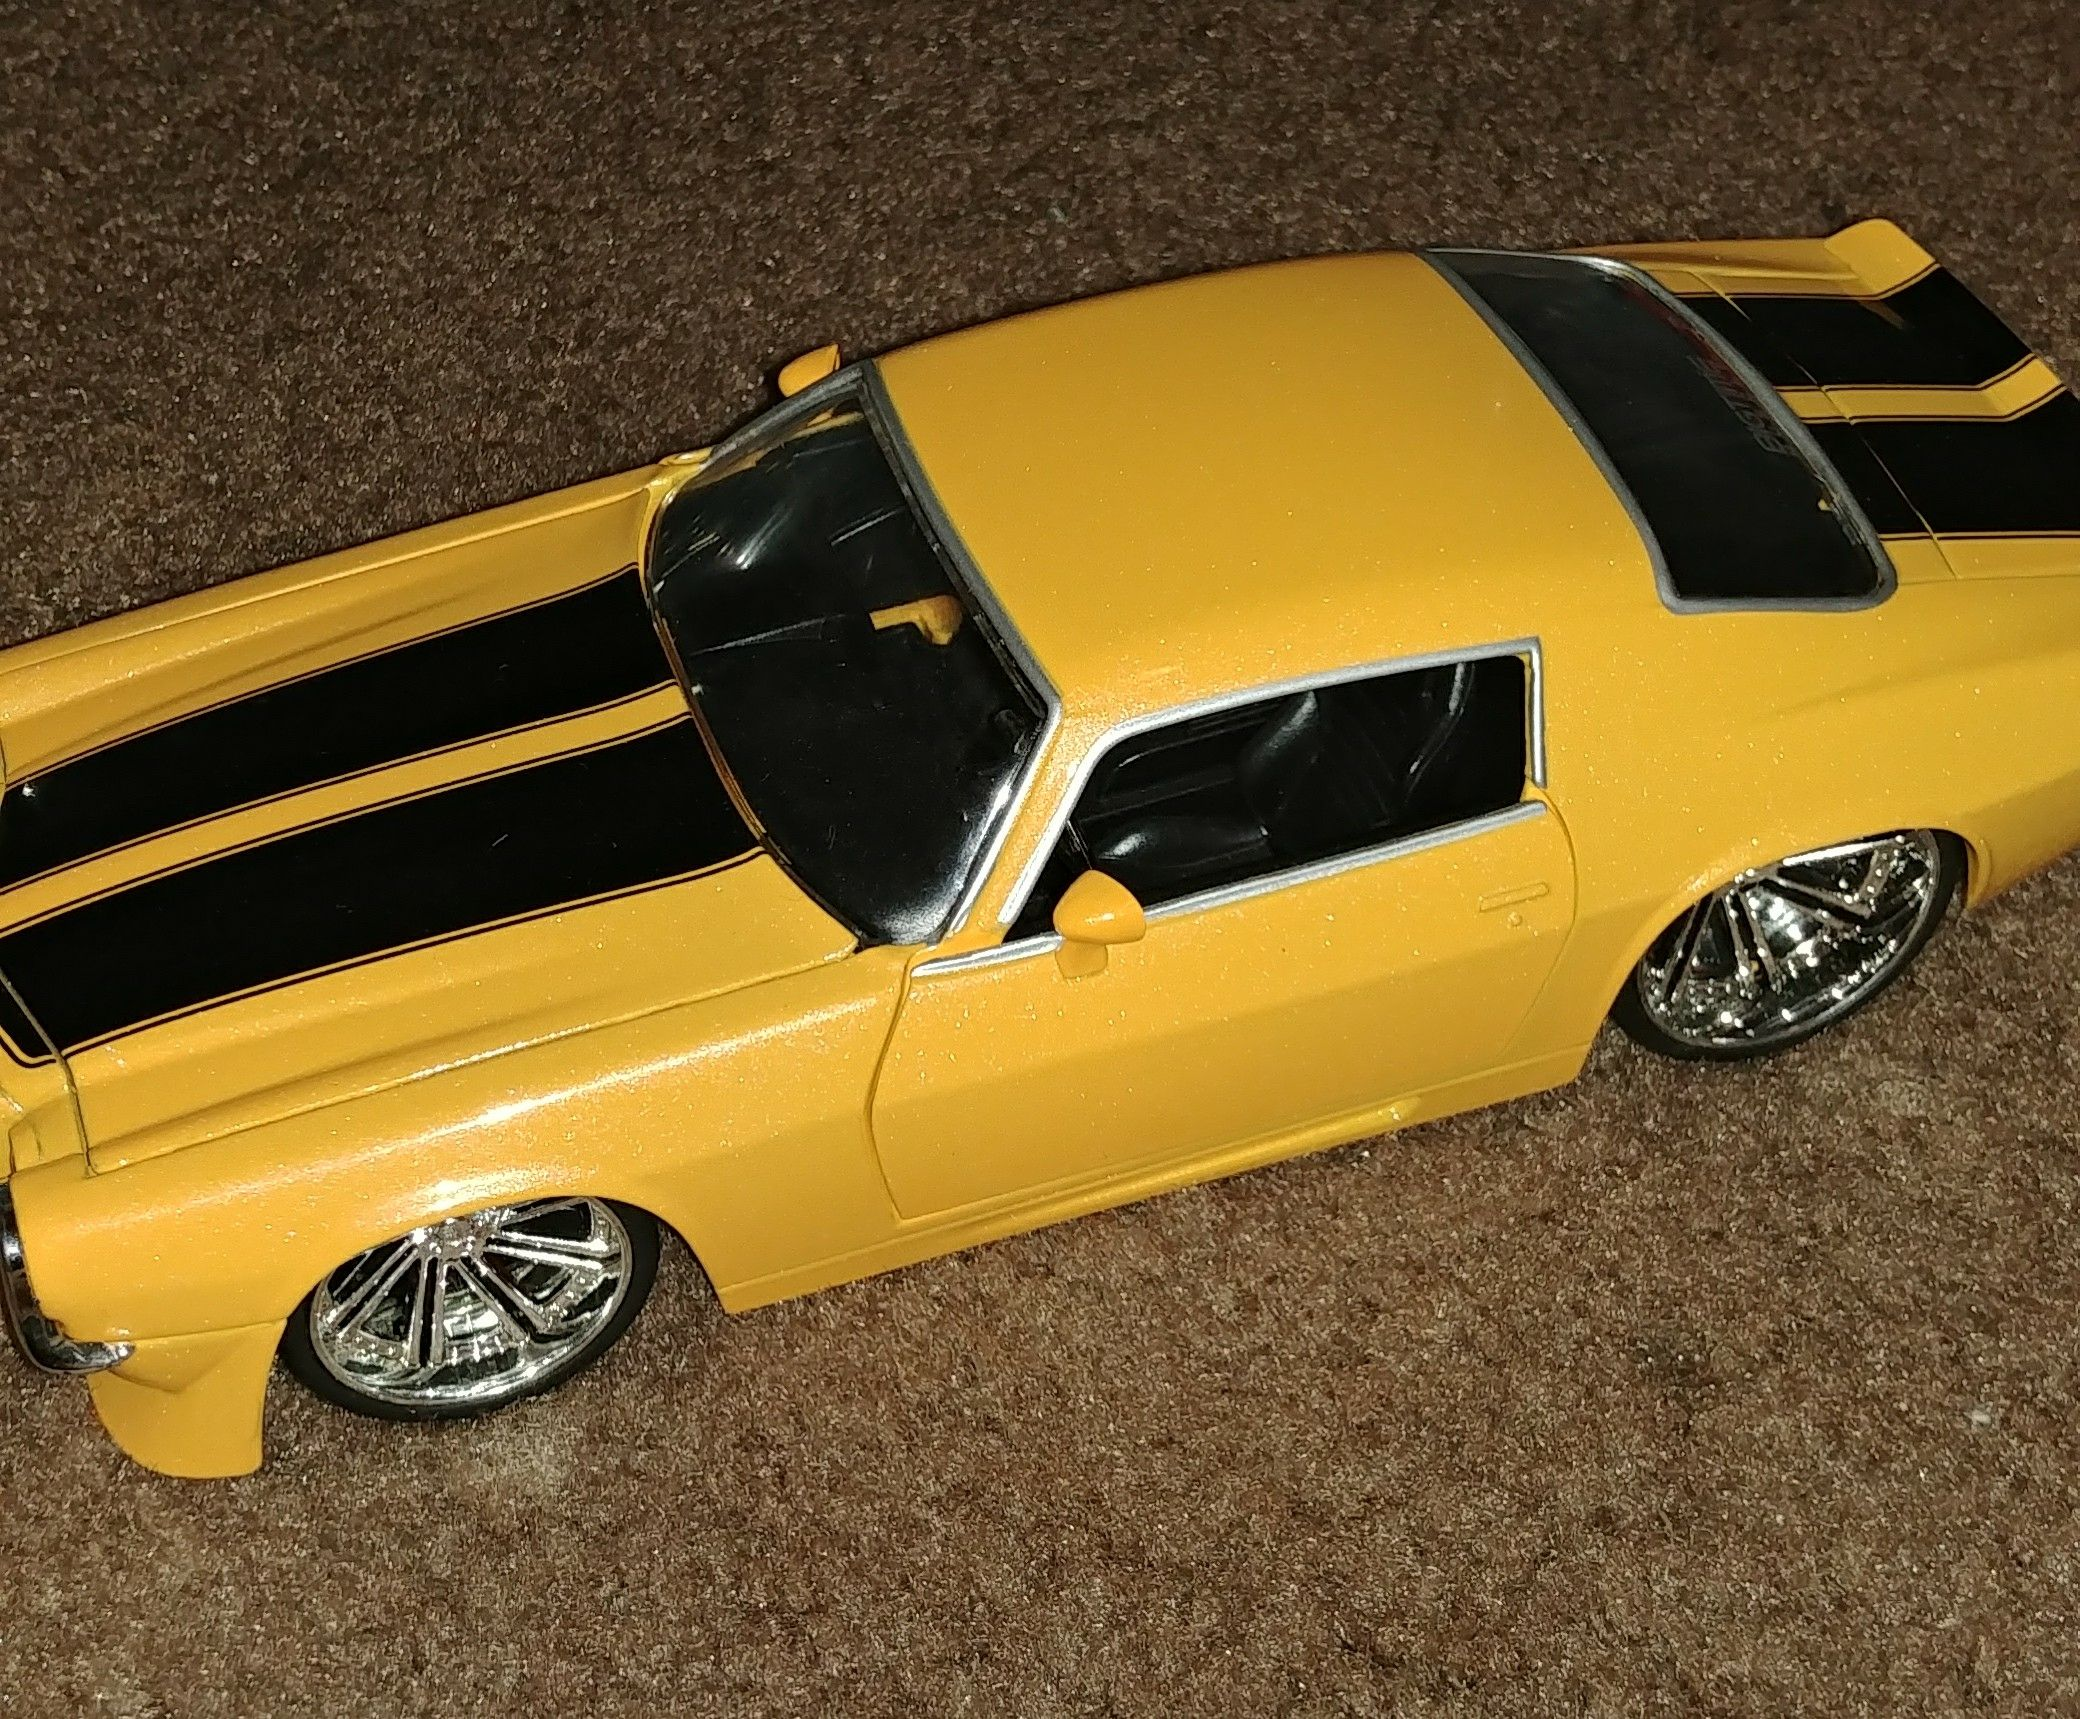 1971 Chevy Camaro Toy Car Die Cast And Hot Wheels Jada Toys